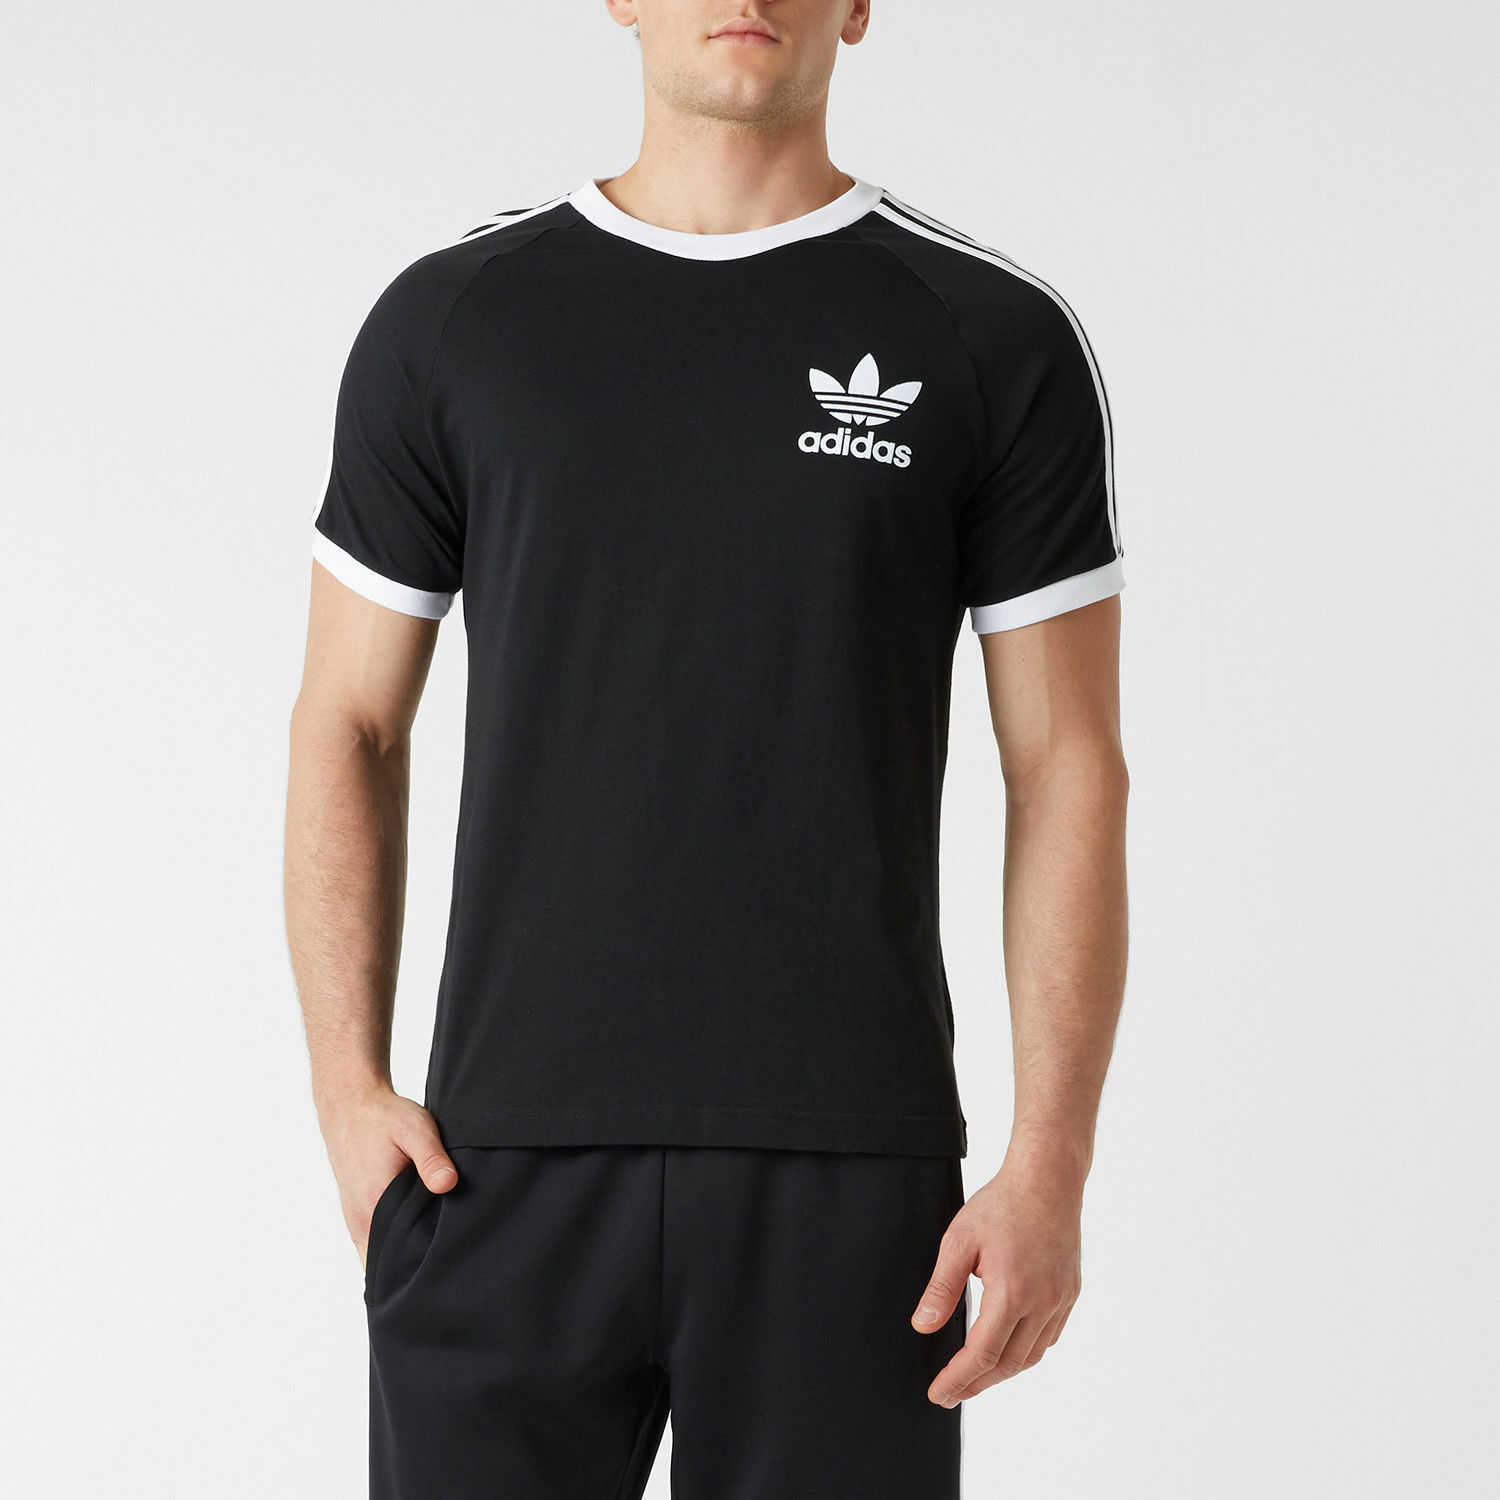 Details about adidas Originals Mens California Trefoil T Shirts 3 Stripes Crew Neck Sports Tee